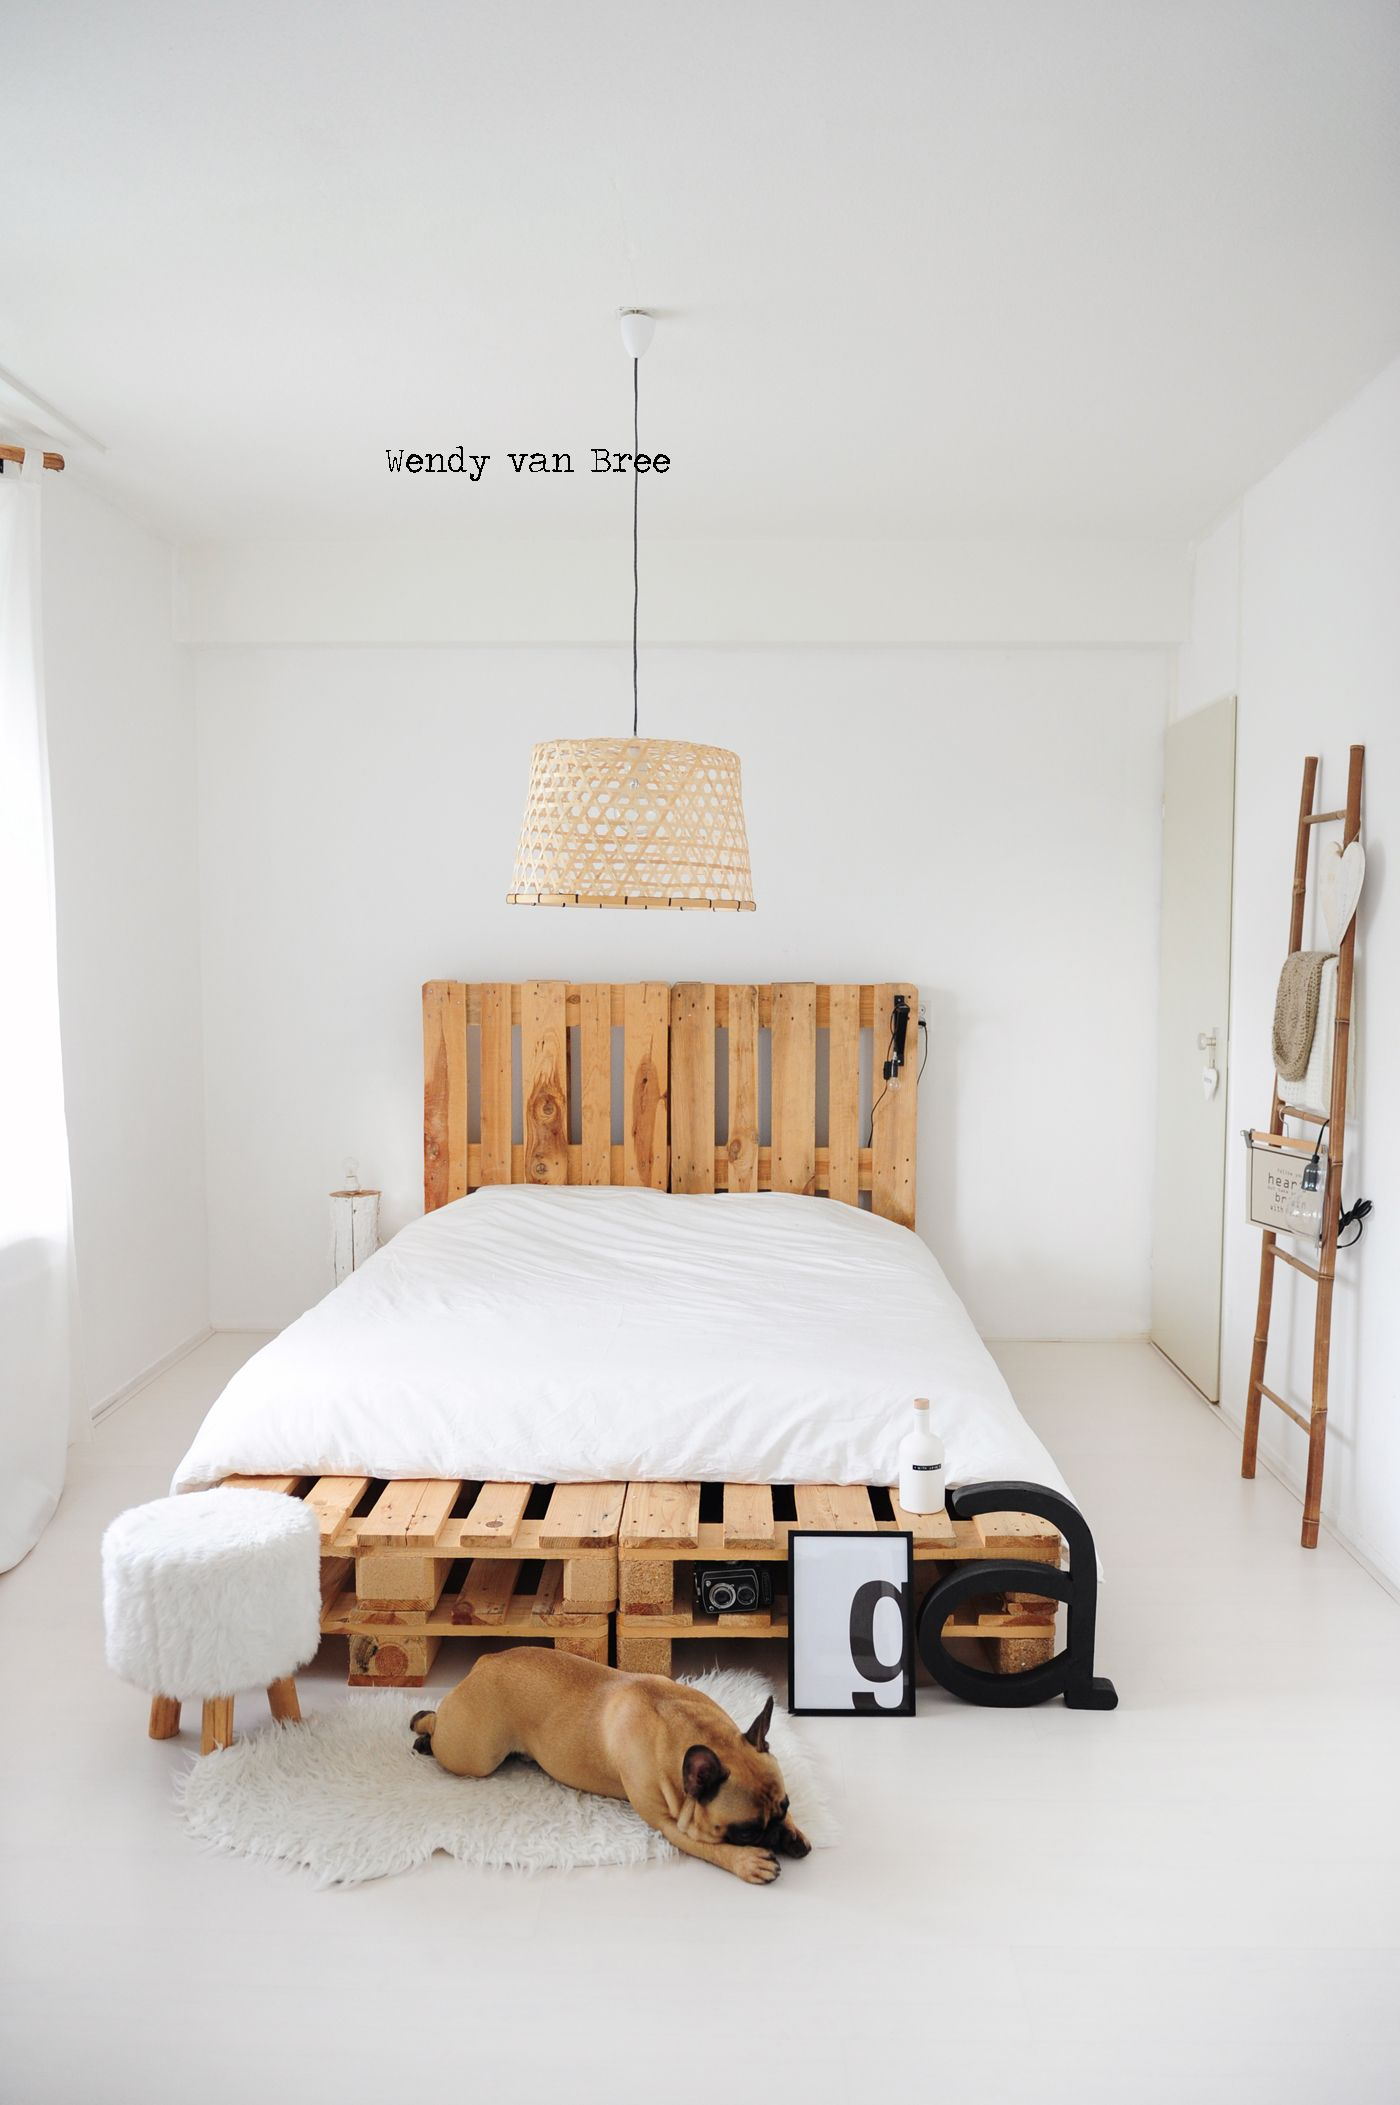 6 DIY Pallet Bed Ideas with Headboards | Home sweet home | Pinterest ...